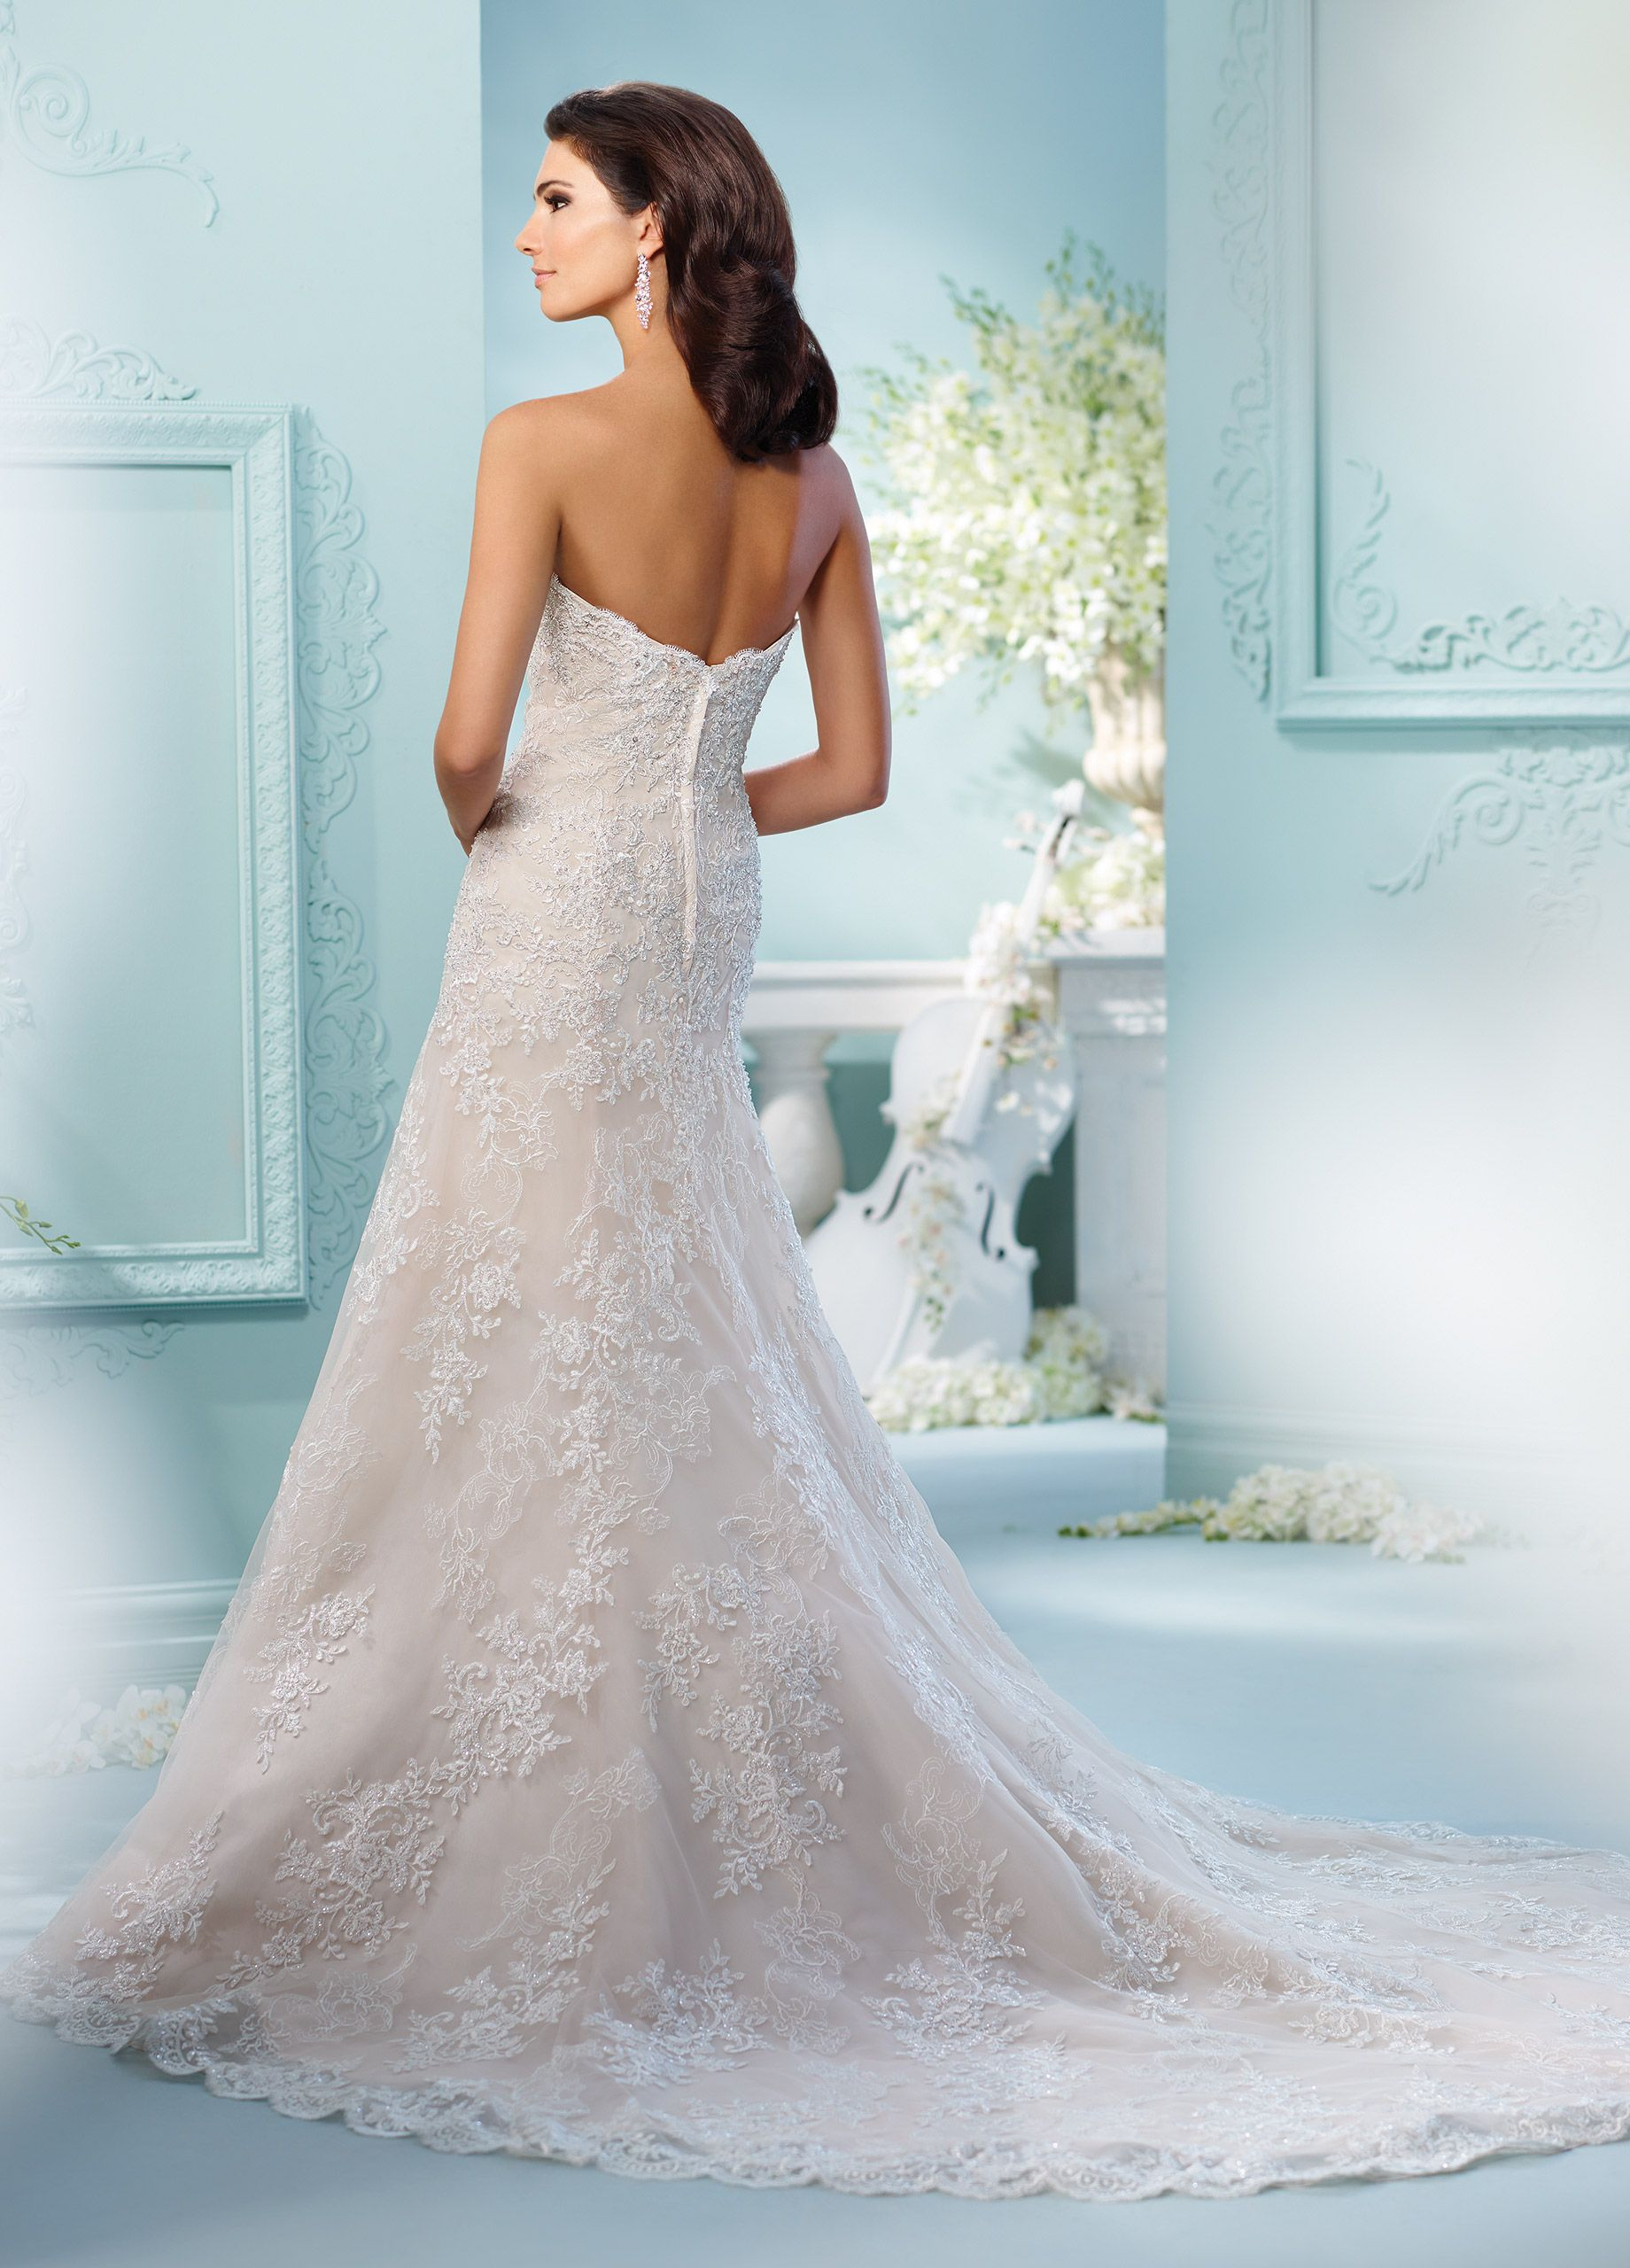 Lace wedding dress halter  Strapless Embroidered Lace Fit u Flare Wedding Dress